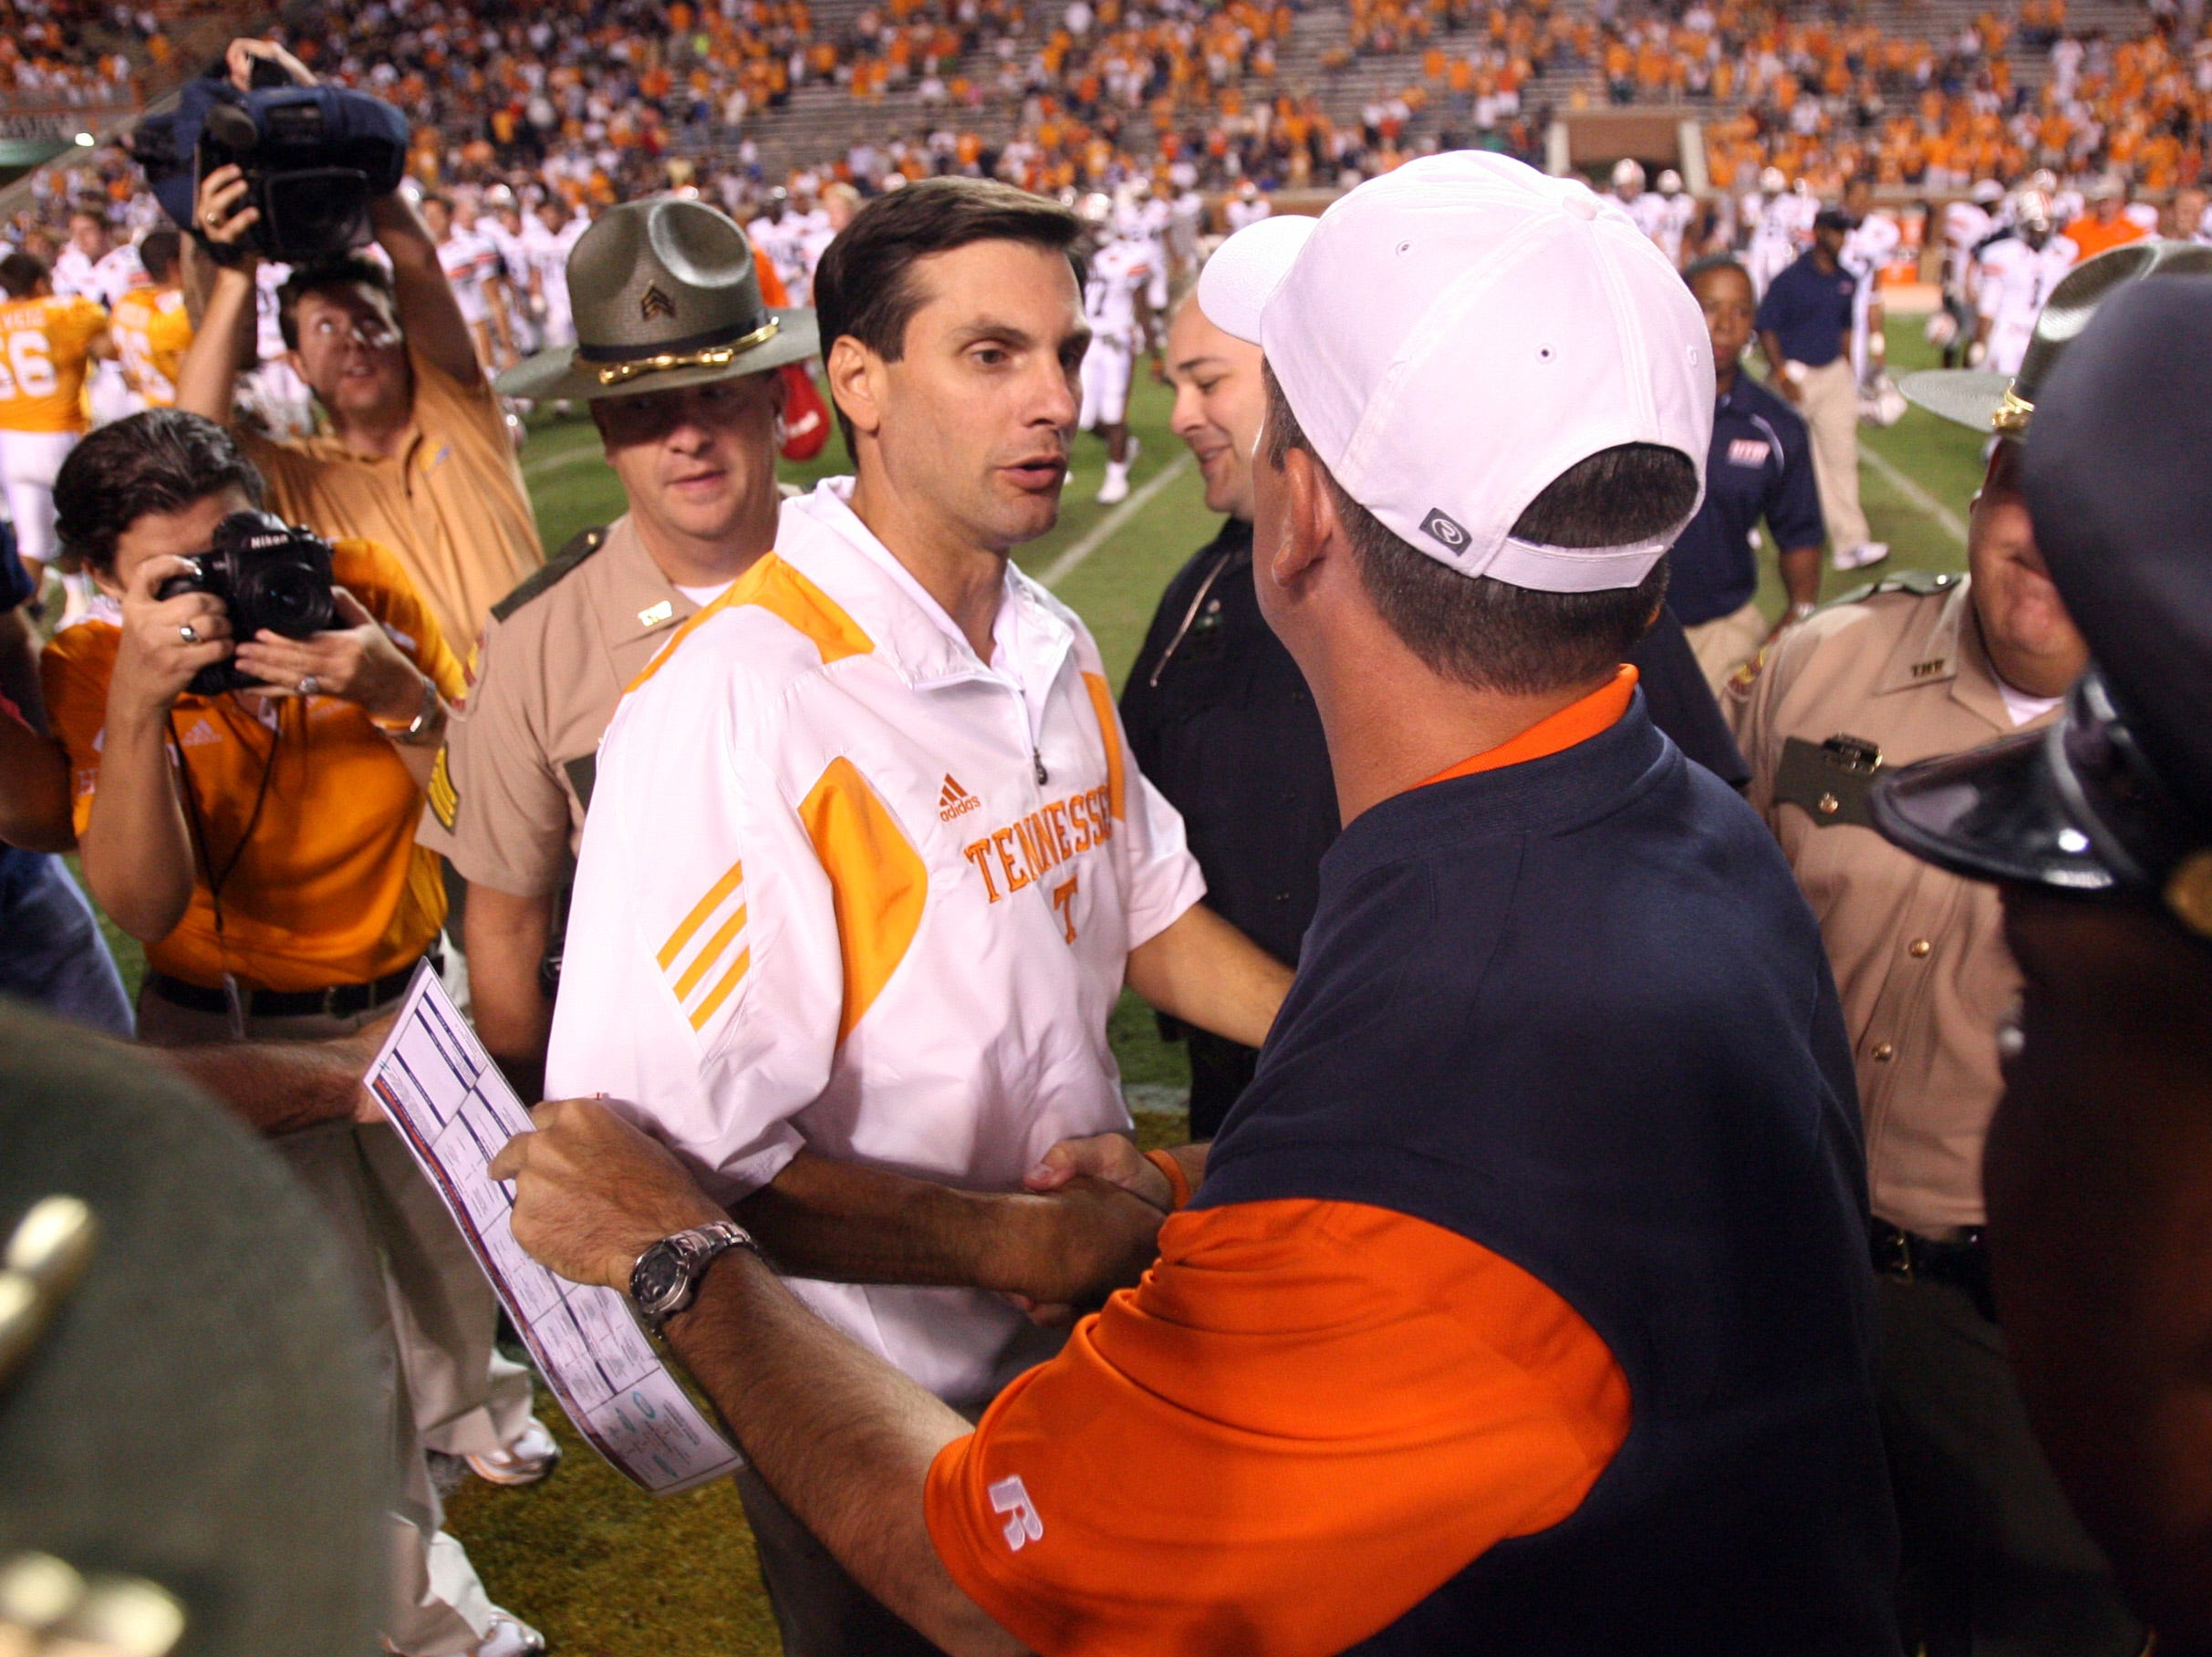 Tennessee head coach Derek Dooley shakes hands with UT Martin head coach Jason Simpson after the Vols defeated the Skyhawks 50-0  at Neyland Stadium Saturday, Sept. 4, 2010. The Vols' season opener was a 50 - 0 victory in Derek Dooley's debut as head coach.